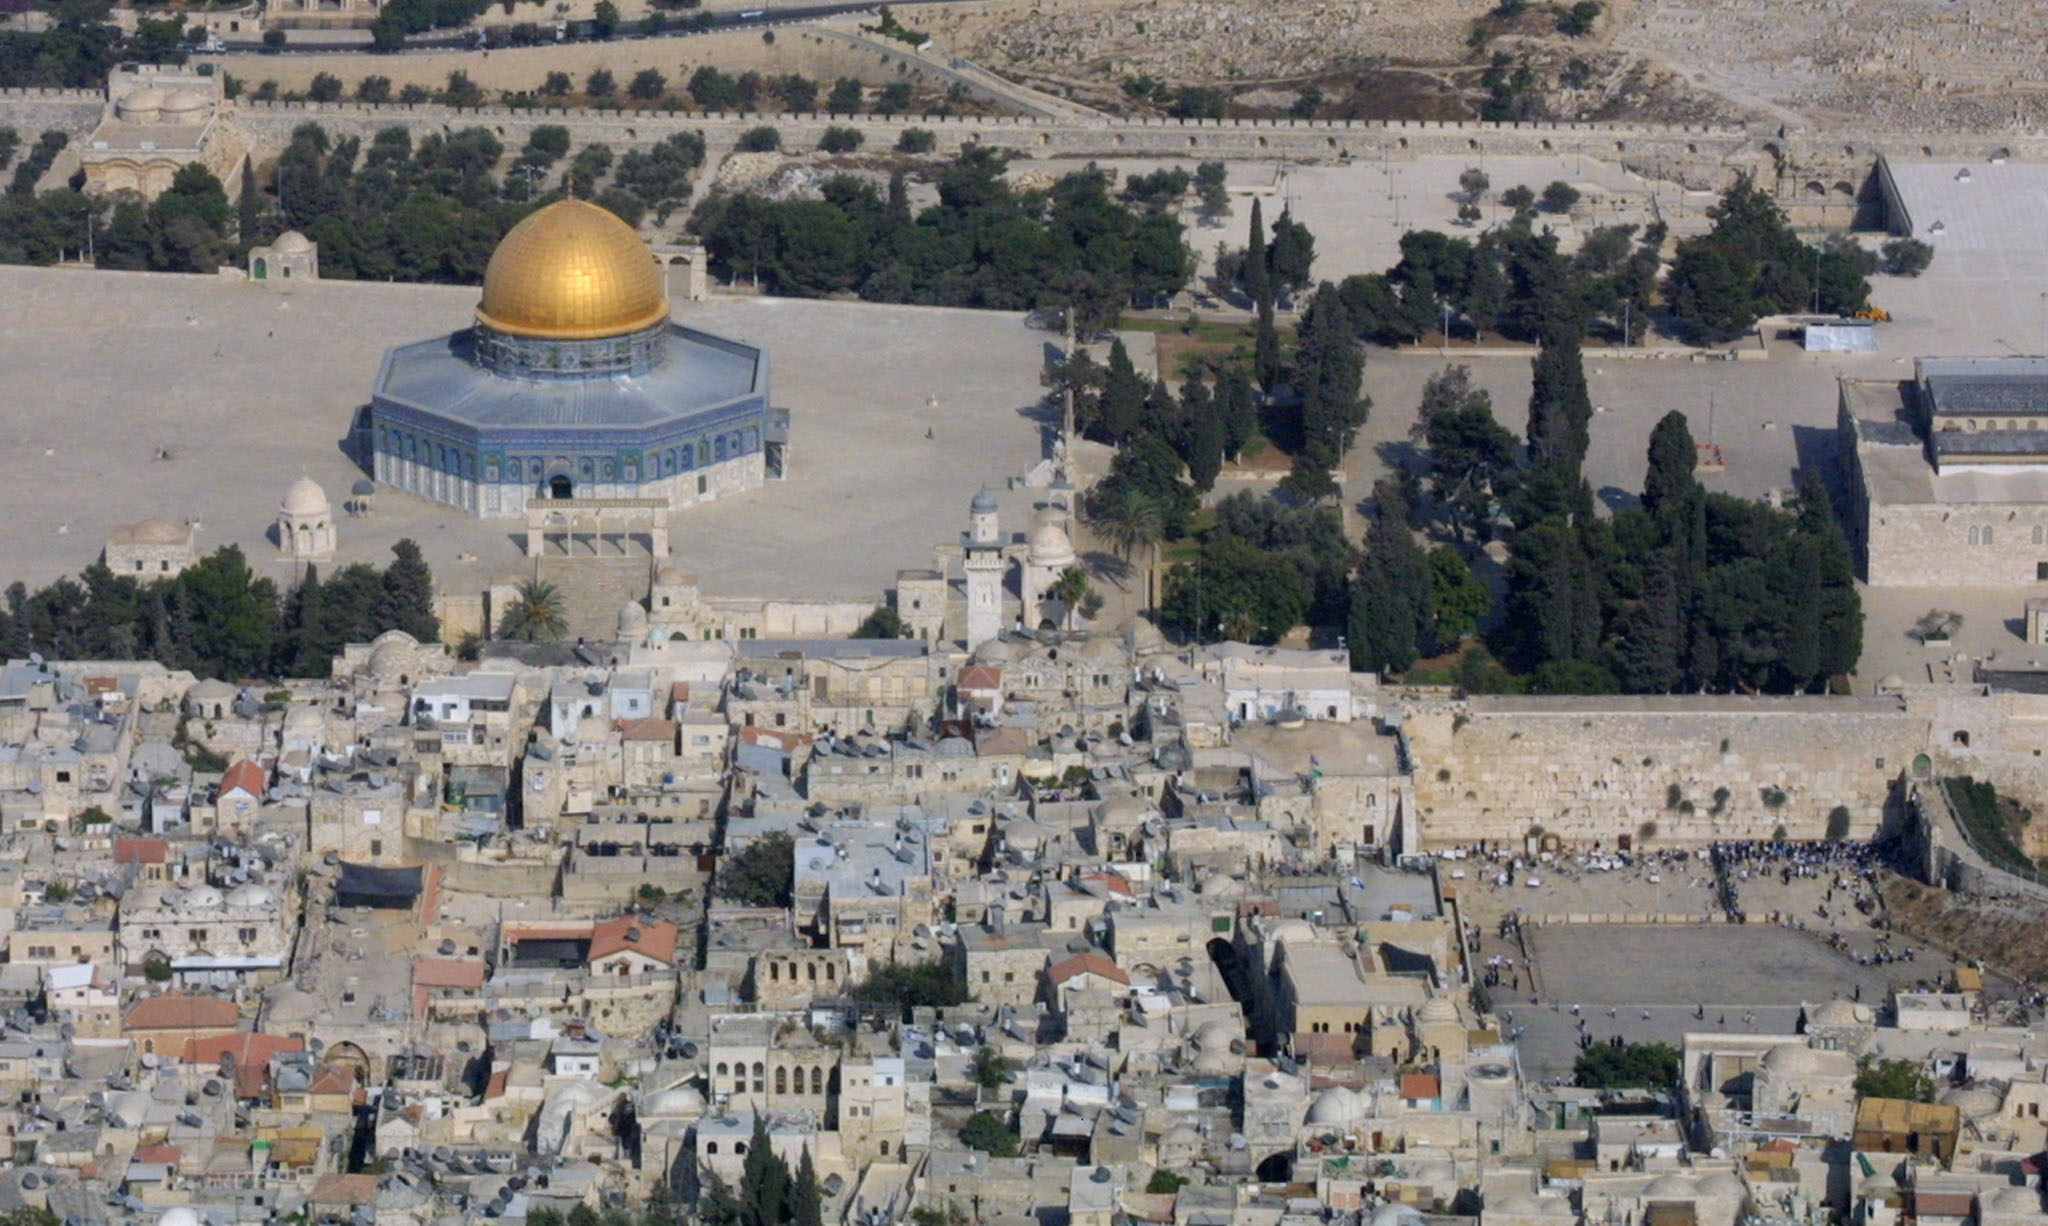 An aerial view of the Old City of Jerusalem on Sept. 24, 2002, with the Al-Aqsa mosque compound, Islam's third holiest shrine on the left, and on the right side the Western Wall, the holiest site for Jews who believe it is part of the ancient Jewish temple. (Gali Tibbon/AFP/Getty Images)